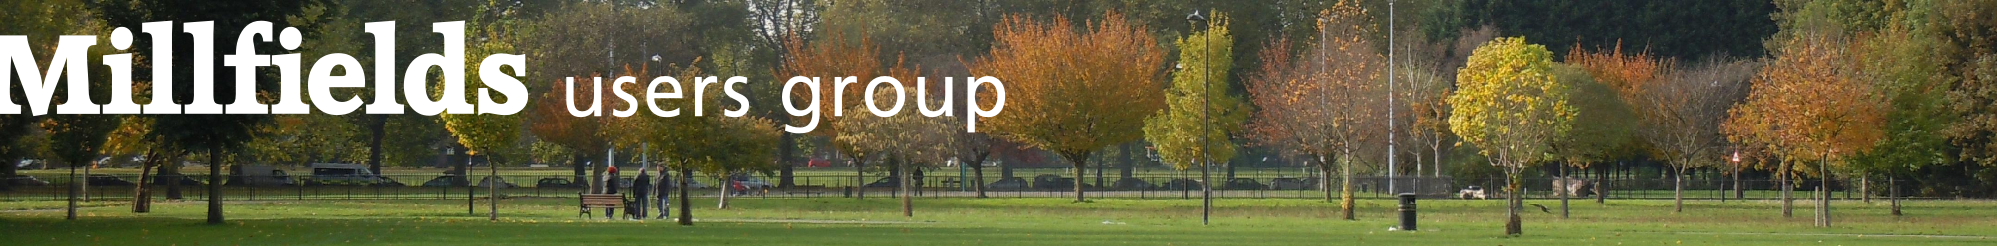 Millfields Users Group